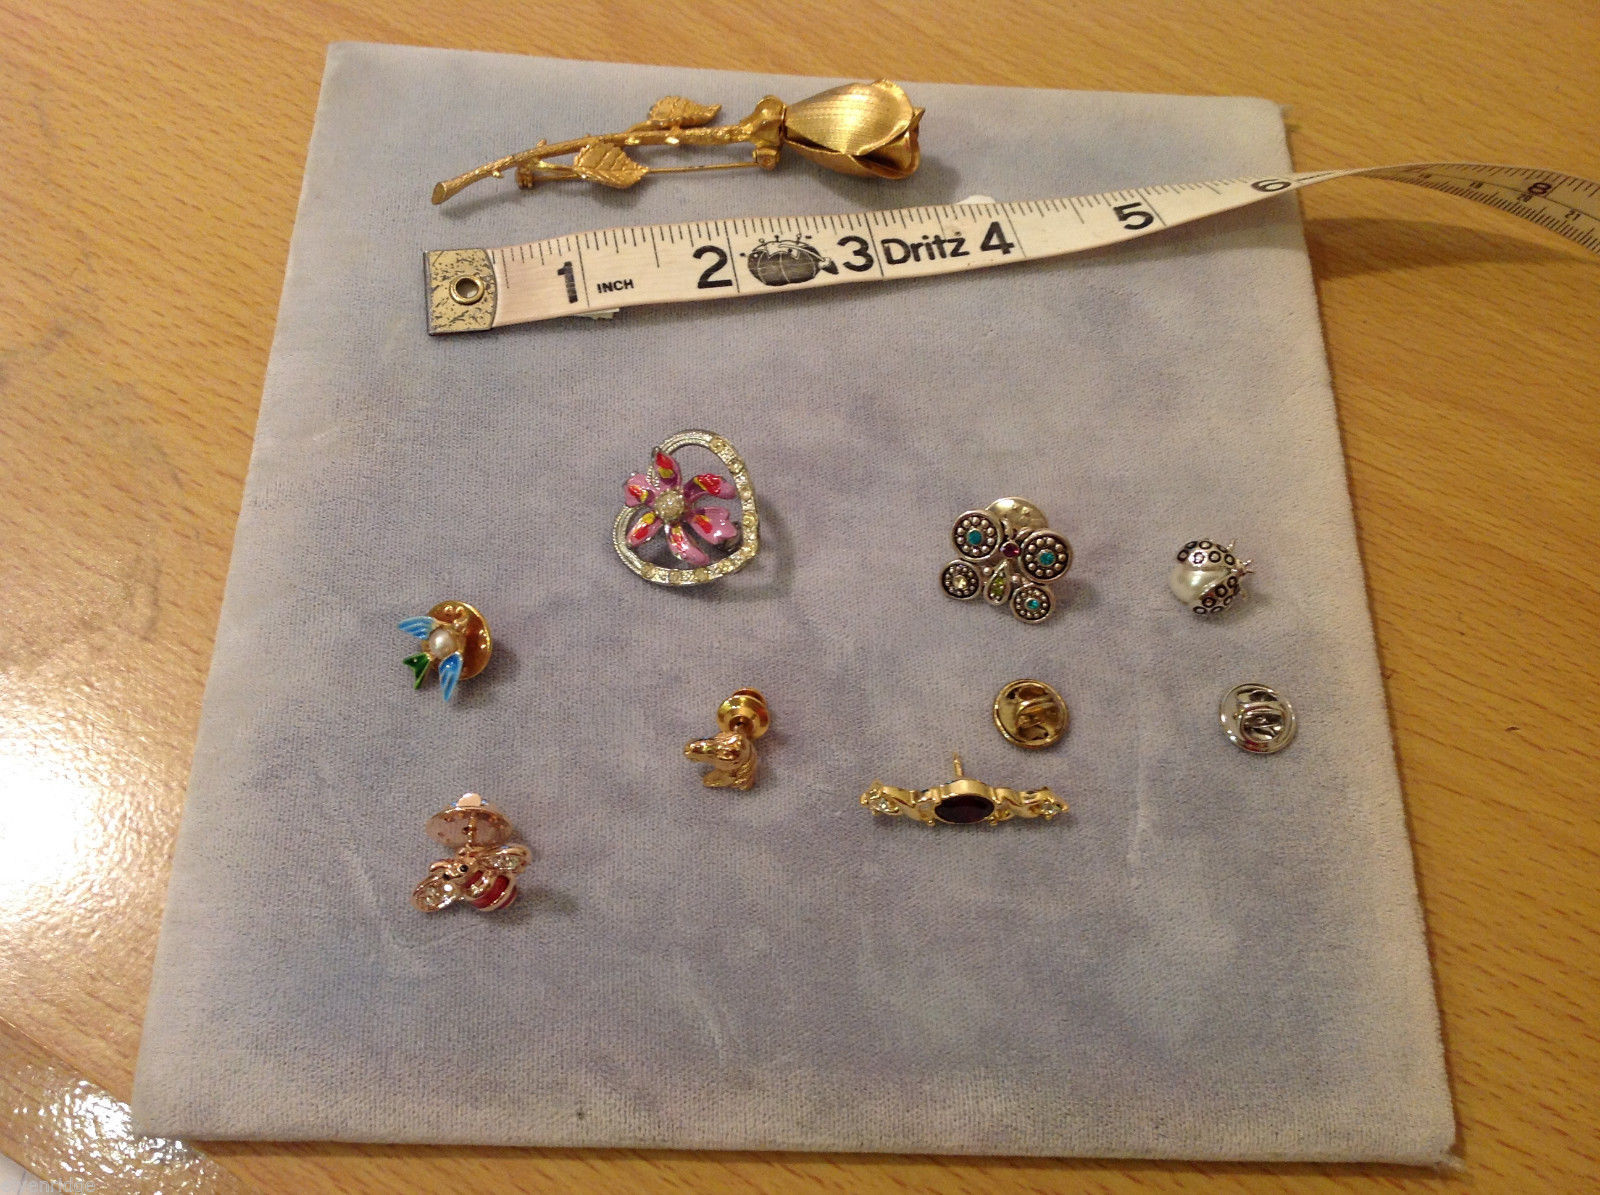 Lot of 8 different Costume Brooch Pins, assorted shapes and sizes